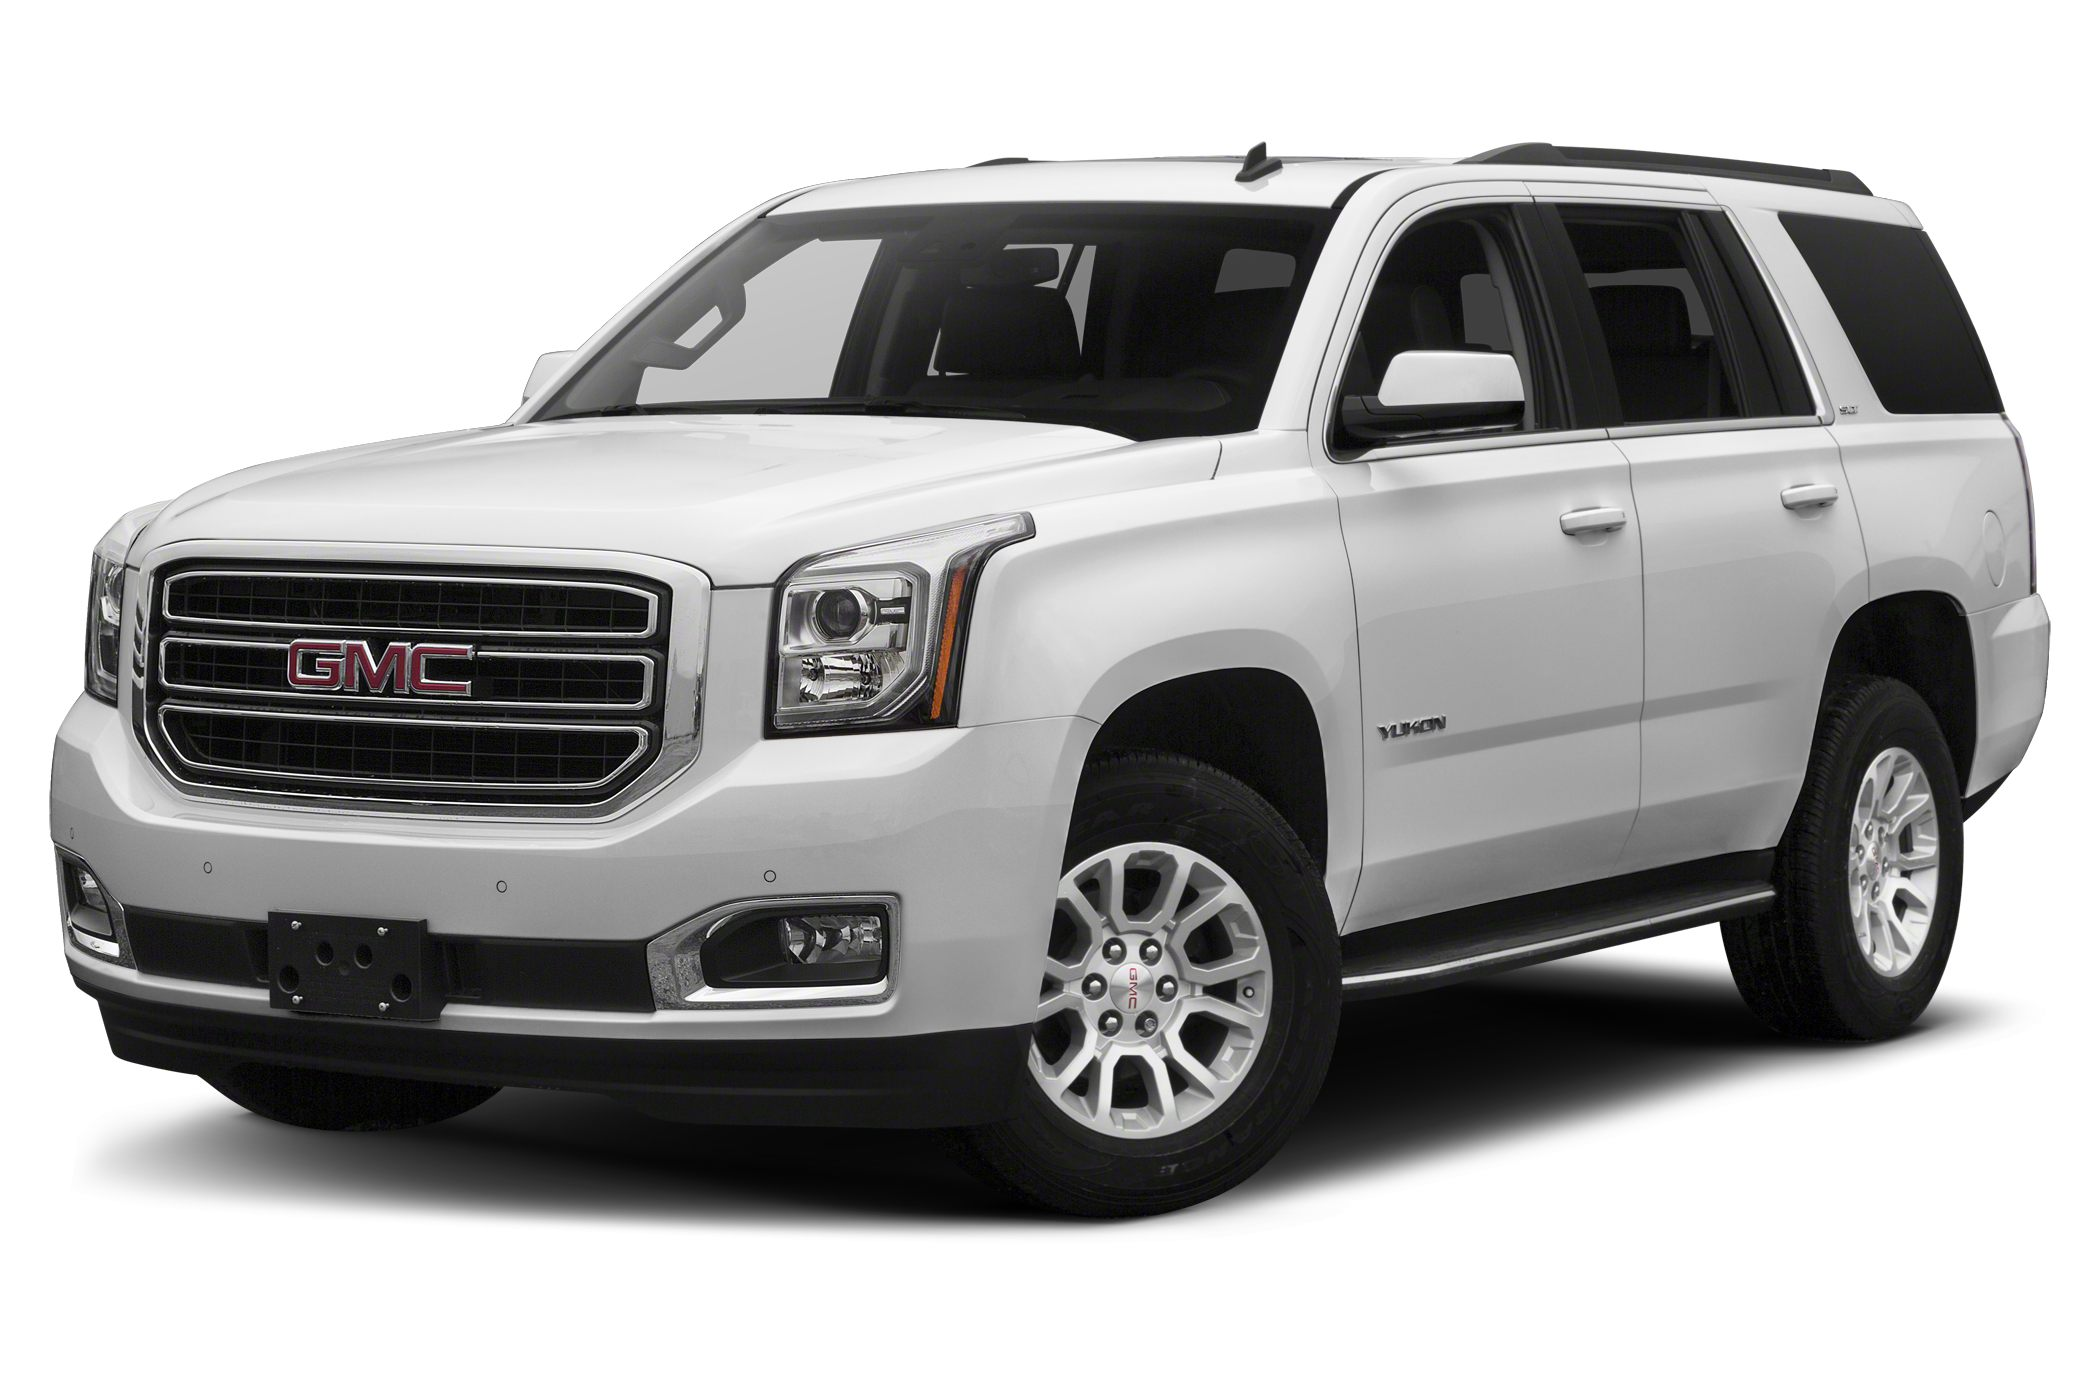 2015 GMC Yukon SLT SUV for sale in Birmingham for $48,350 with 17,715 miles.